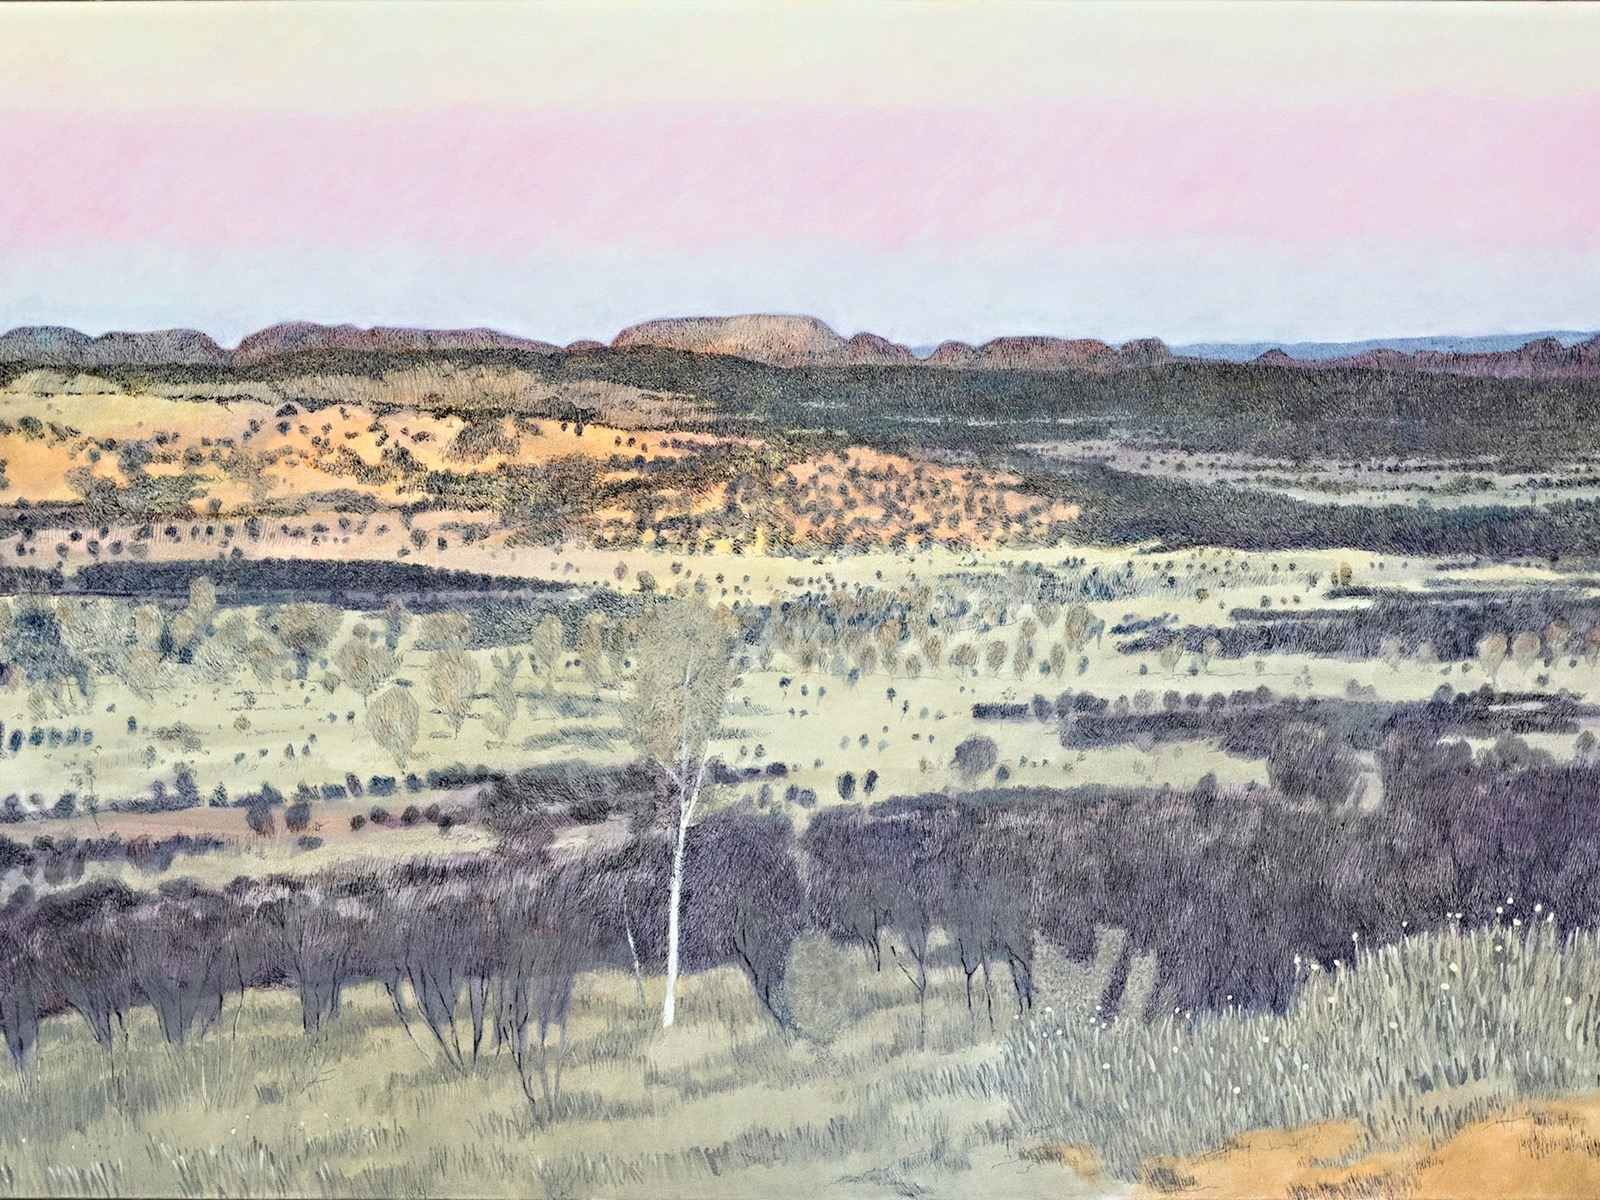 Geoffrey Falk, MacDonnell Ranges, 2016, Indian ink and oil on canvas, 168cm x 102cm